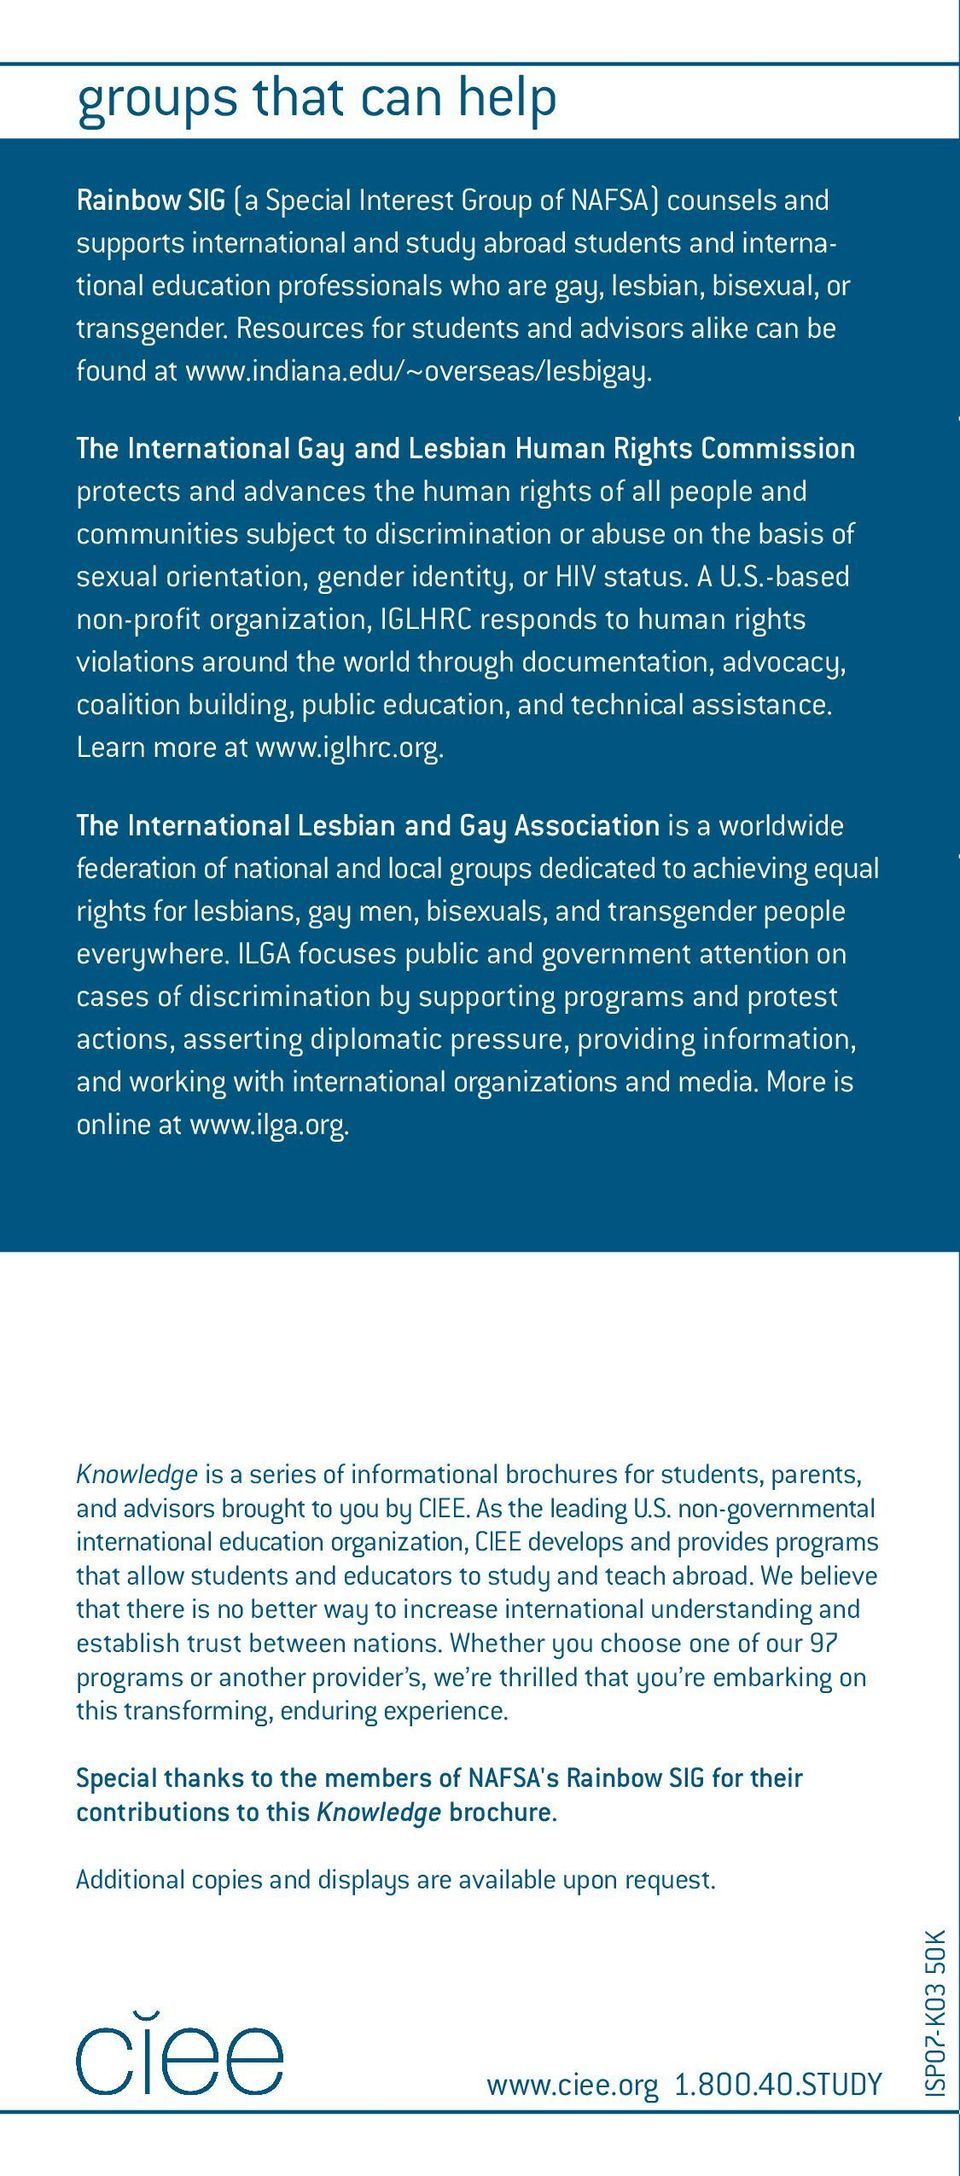 The International Gay and Lesbian Human Rights Commission protects and advances the human rights of all people and communities subject to discrimination or abuse on the basis of sexual orientation,